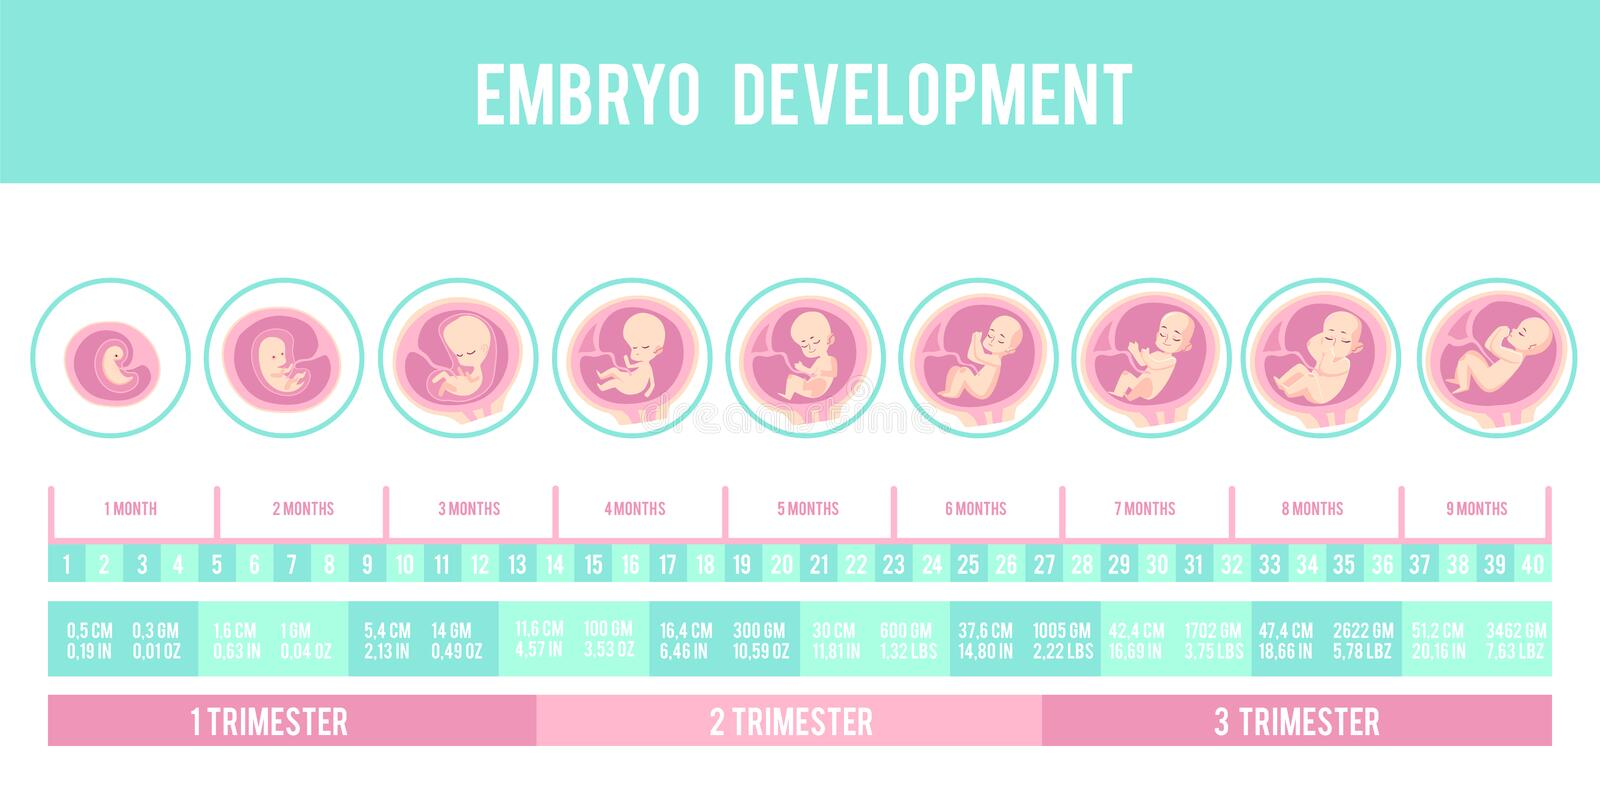 Infographic with stages of pregnancy and embryo, fetus development. royalty free illustration